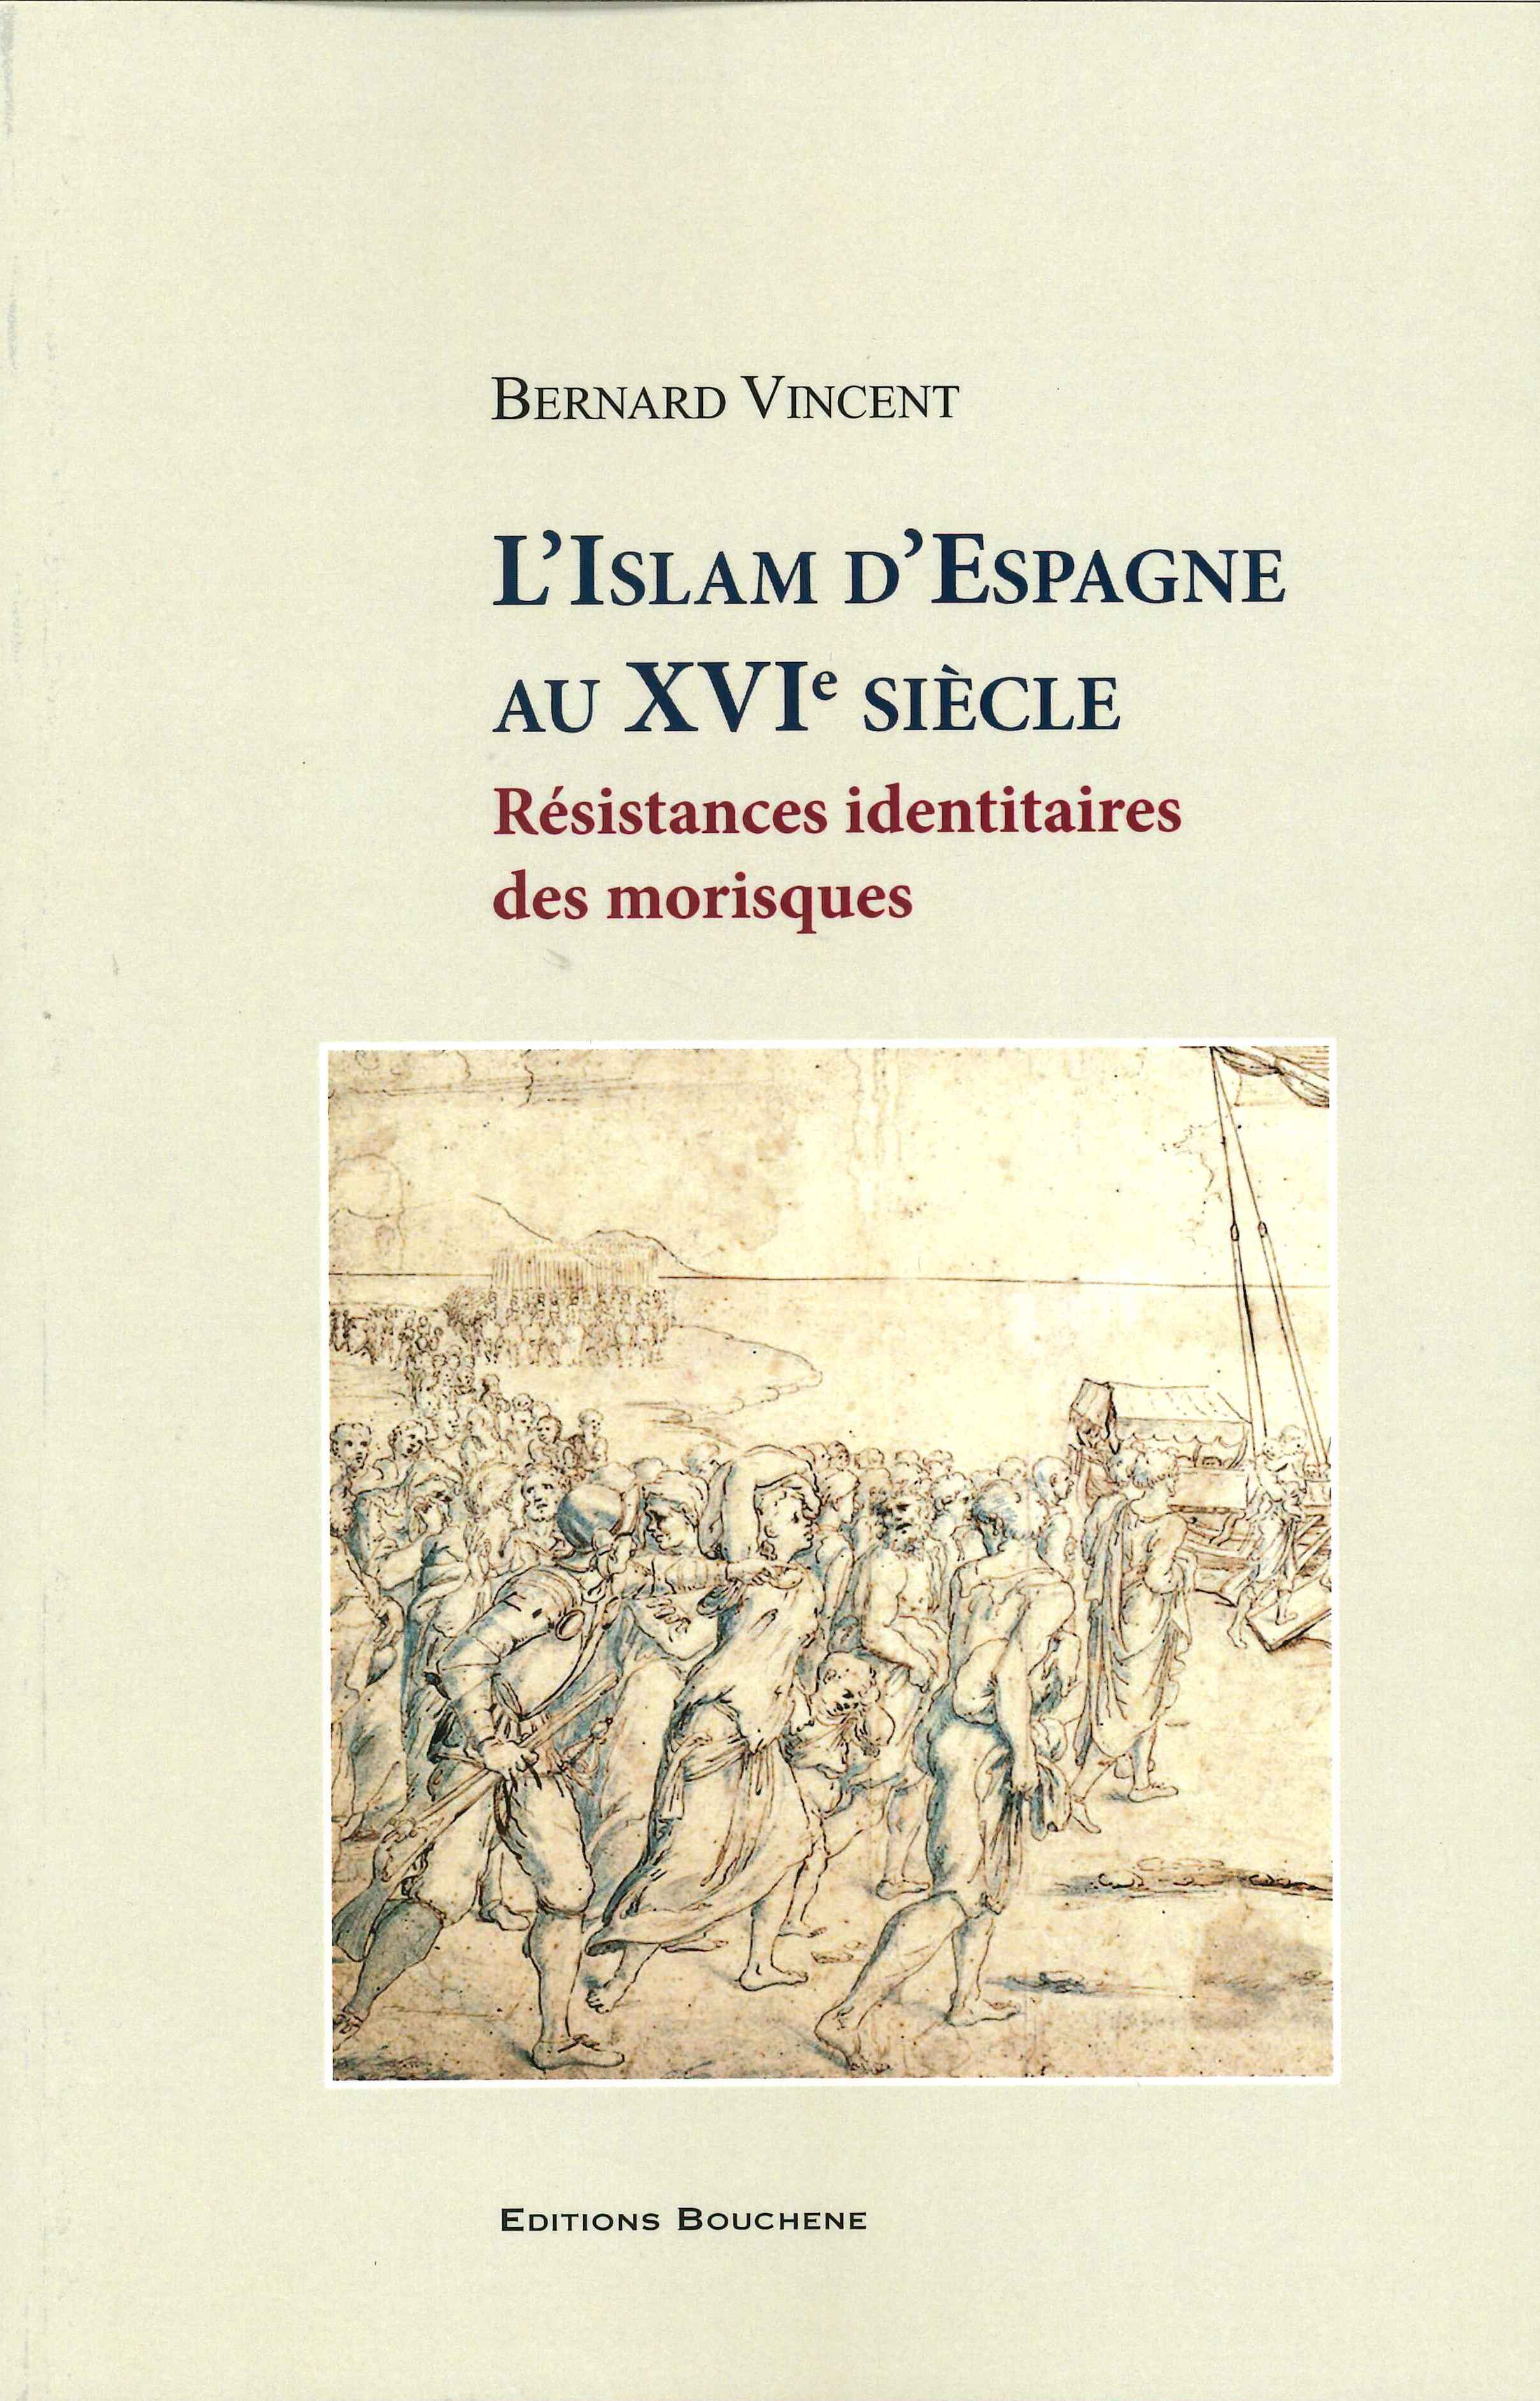 Islam in Spain in the 16th century, identitarian resistance by the Moriscos